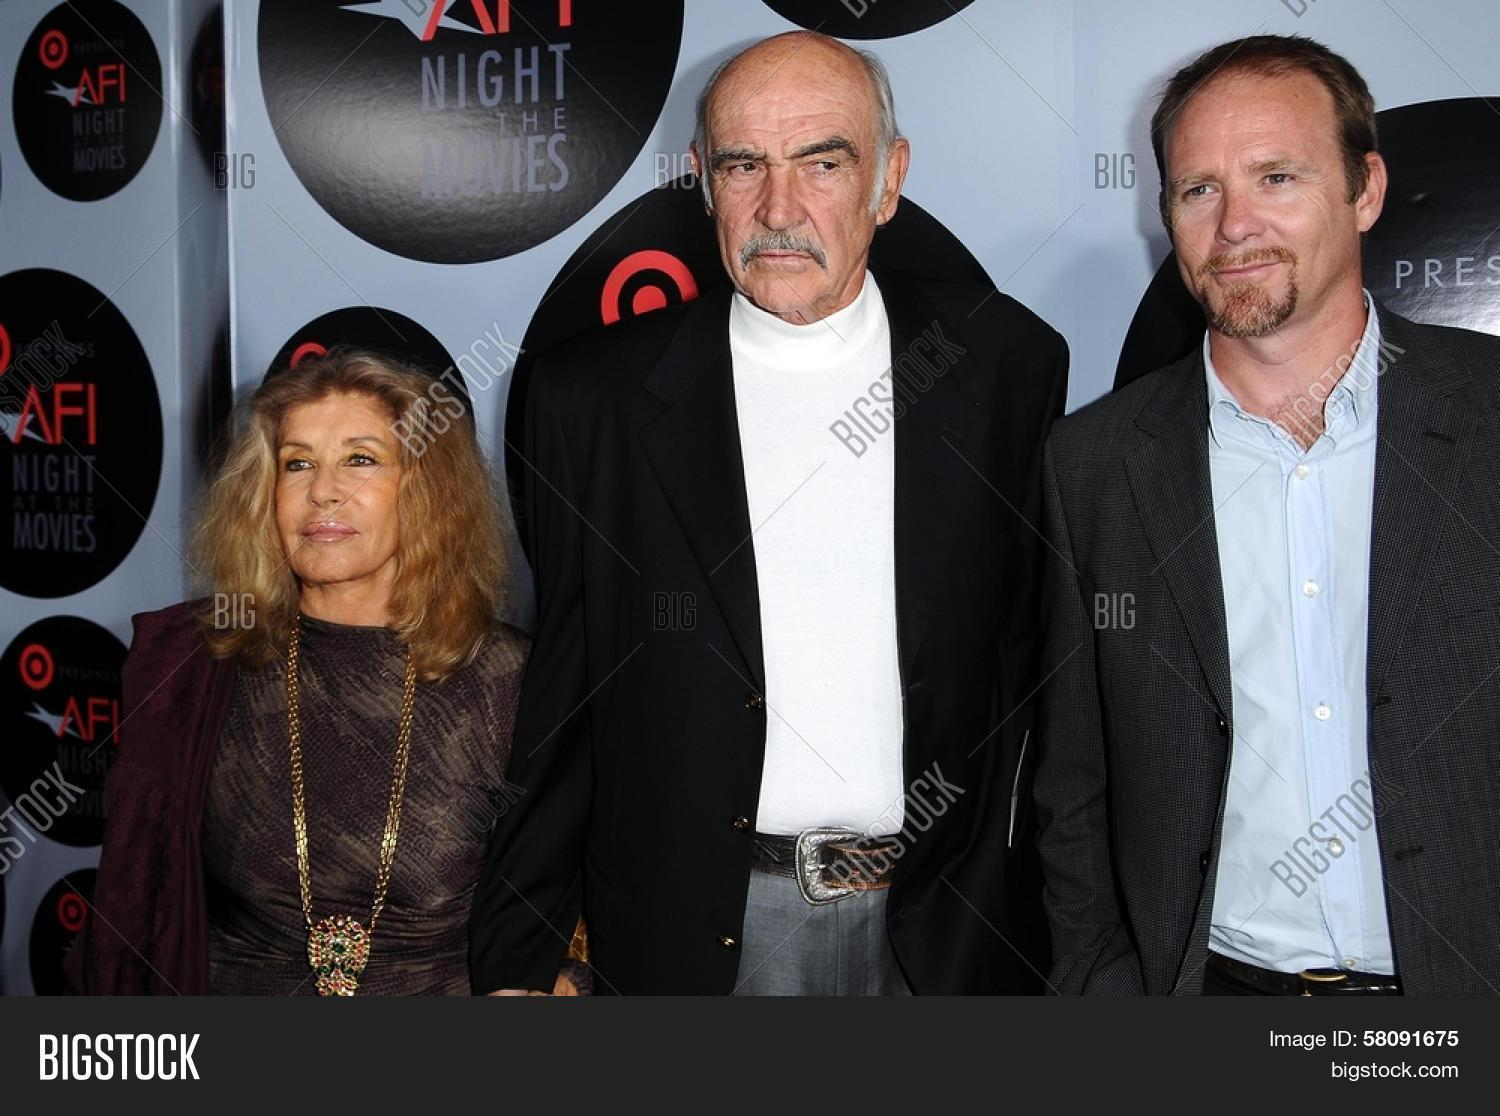 Micheline roquebrune image photo free trial bigstock micheline roquebrune with sean connery and jason connery at afi night at the movies presented by altavistaventures Gallery